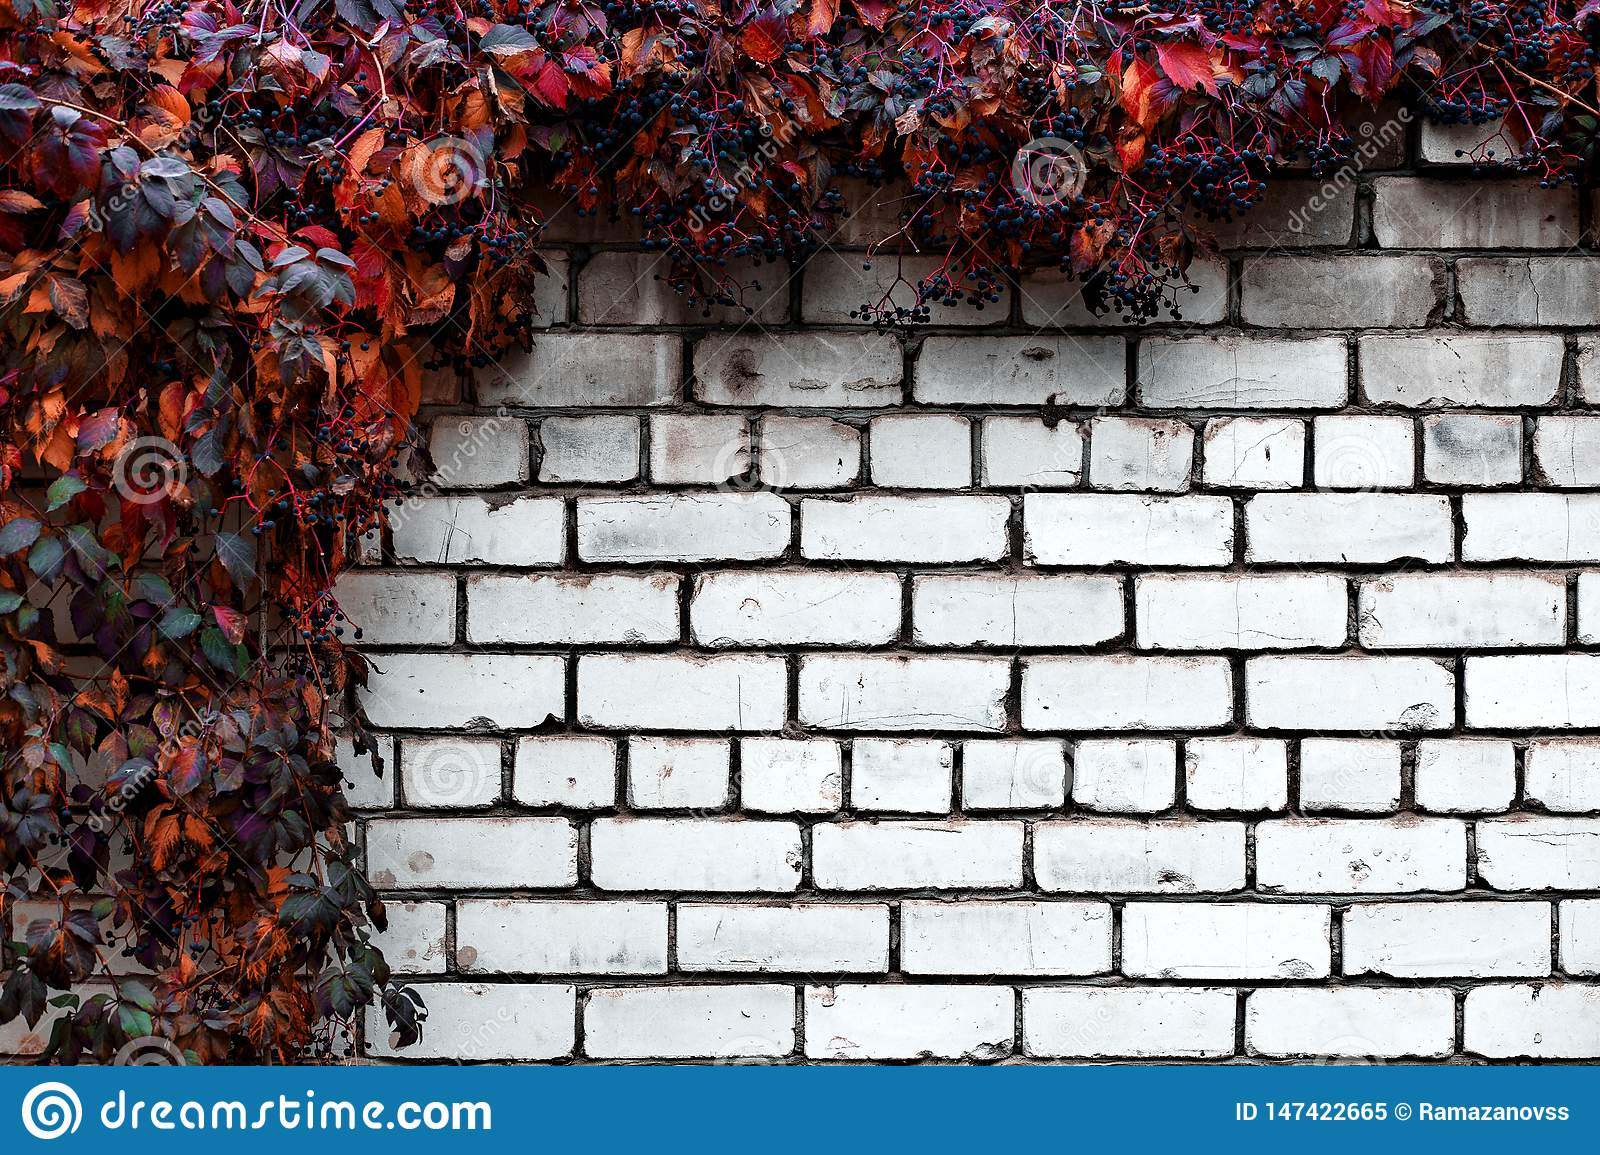 Brick wall with decorative grapes abstract background